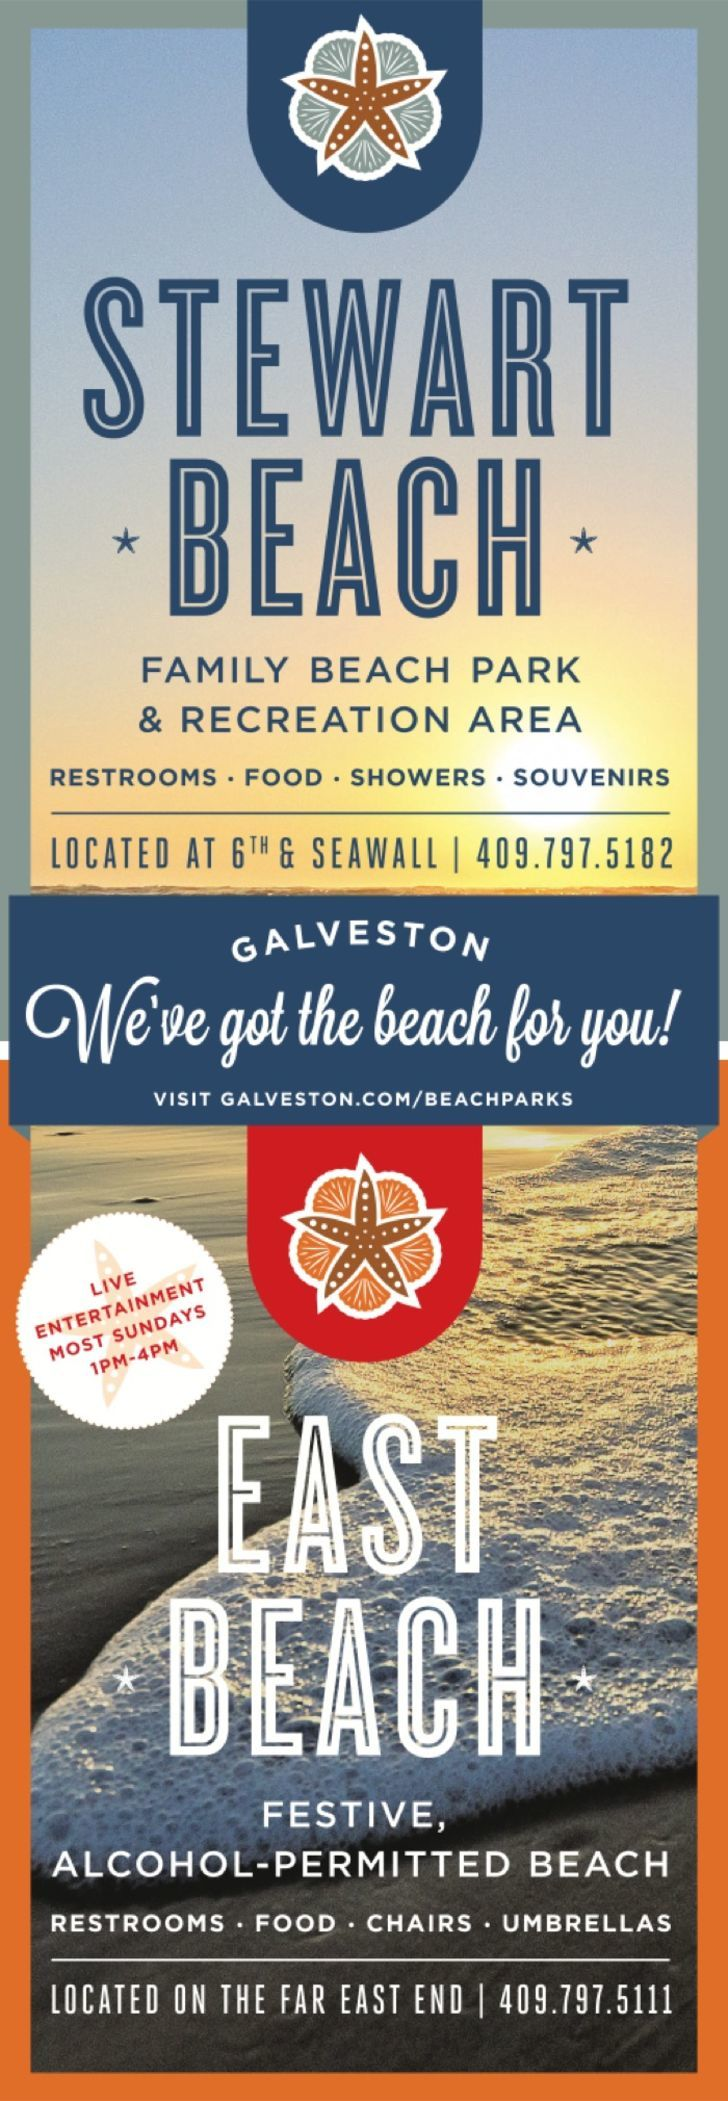 Galveston Park Board